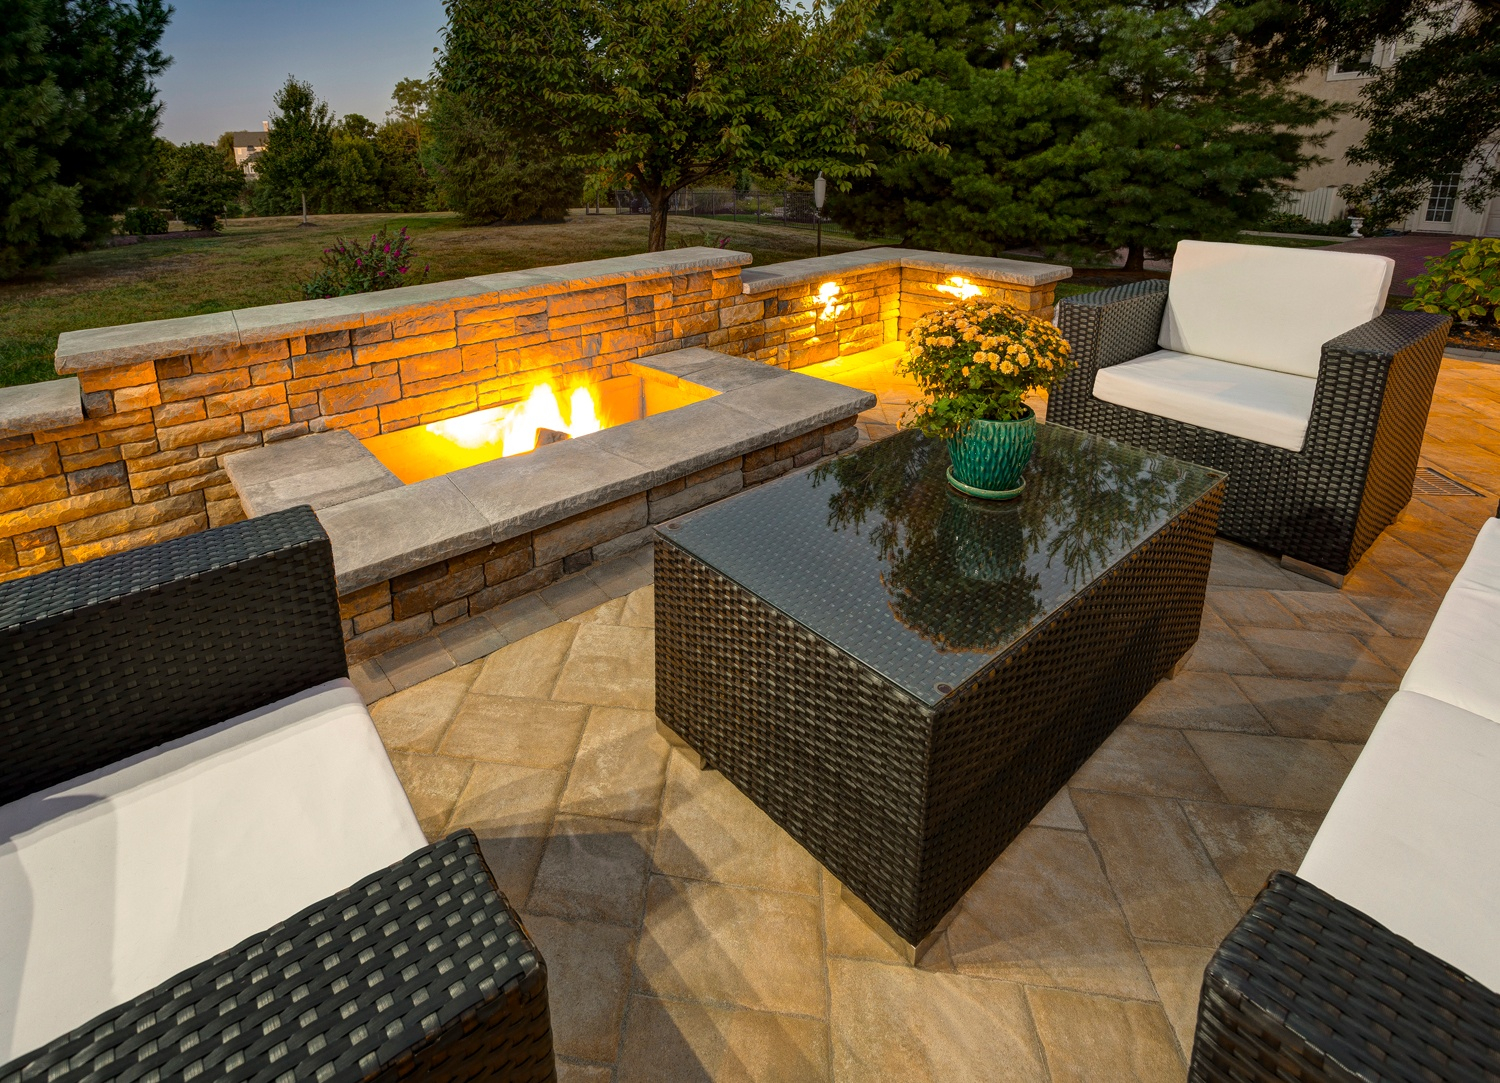 11 Of The Hottest Fire Pit And Outdoor Fireplace Ideas And Pictures intended for dimensions 1500 X 1083